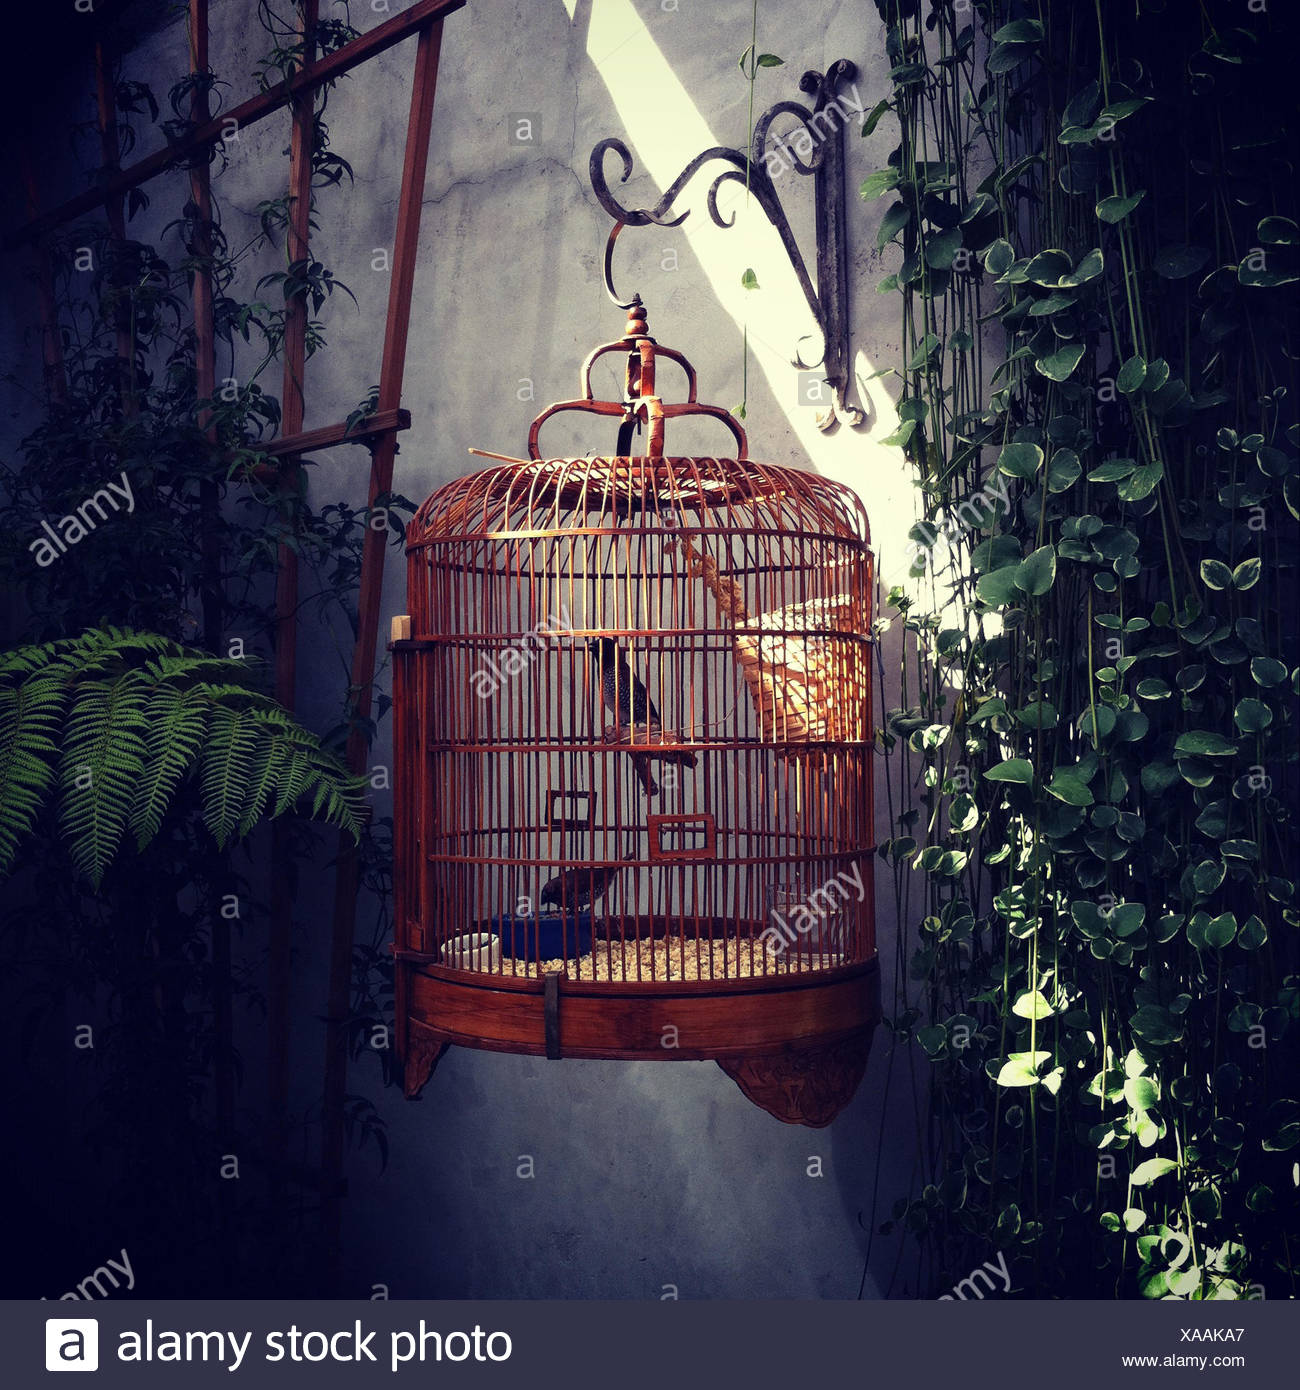 Birds in ornate cage hanging on wall outdoors - Stock Image